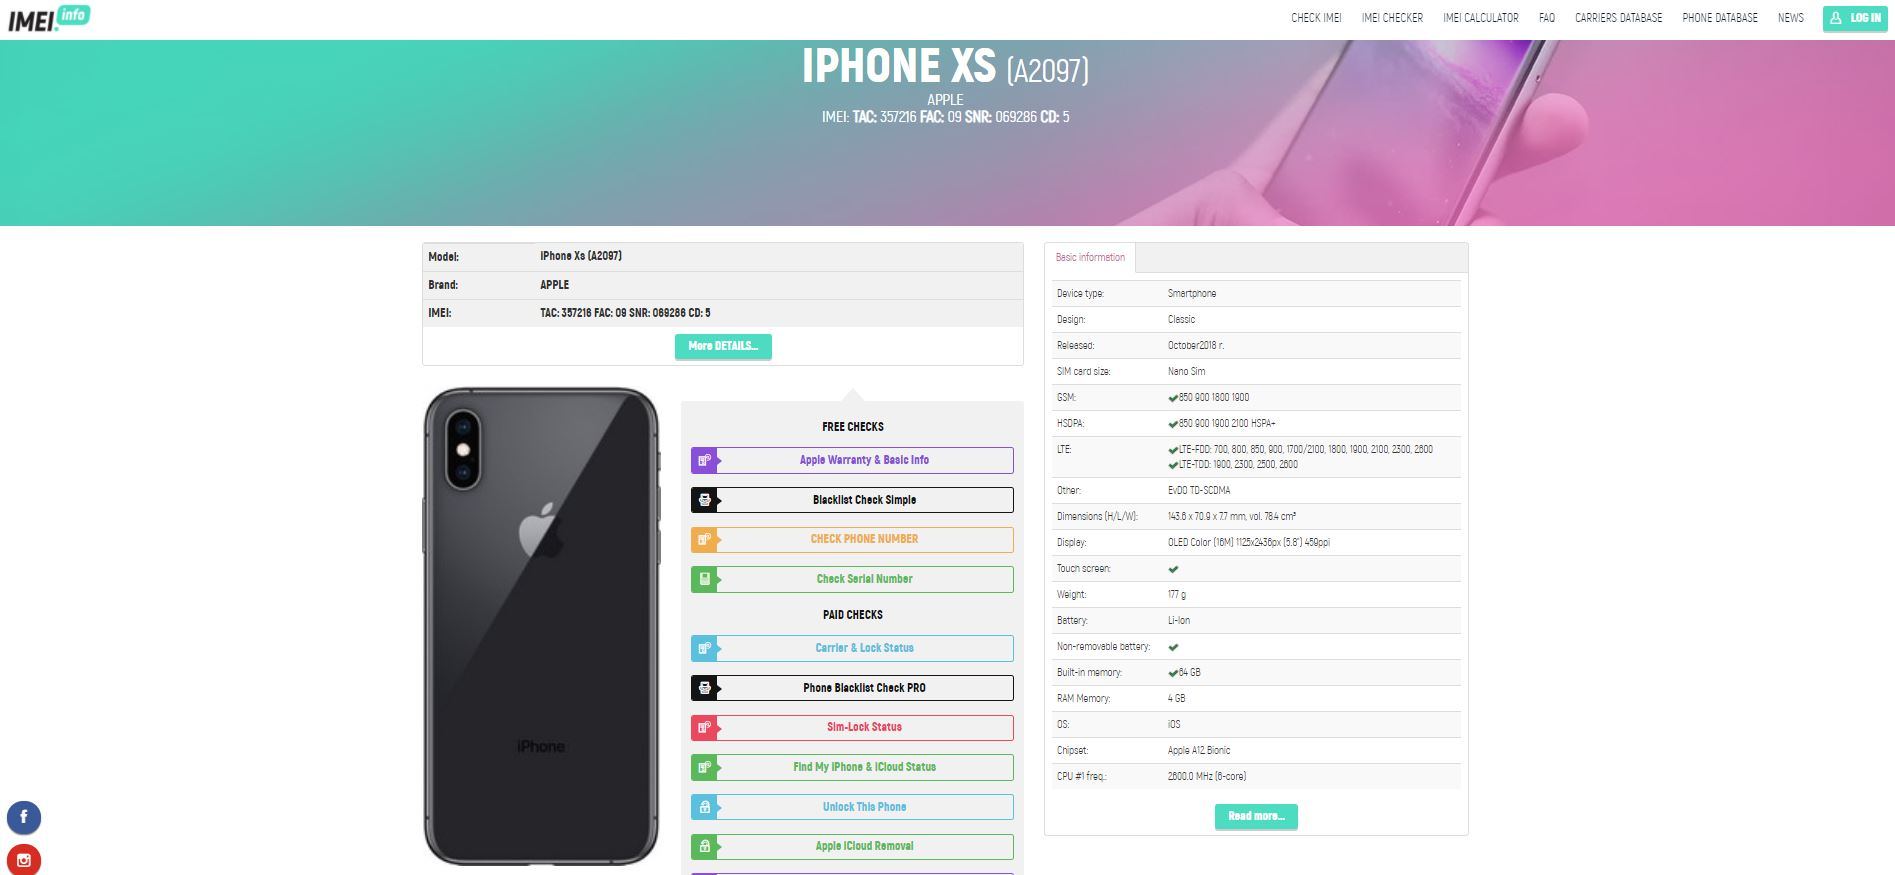 iPhone specification